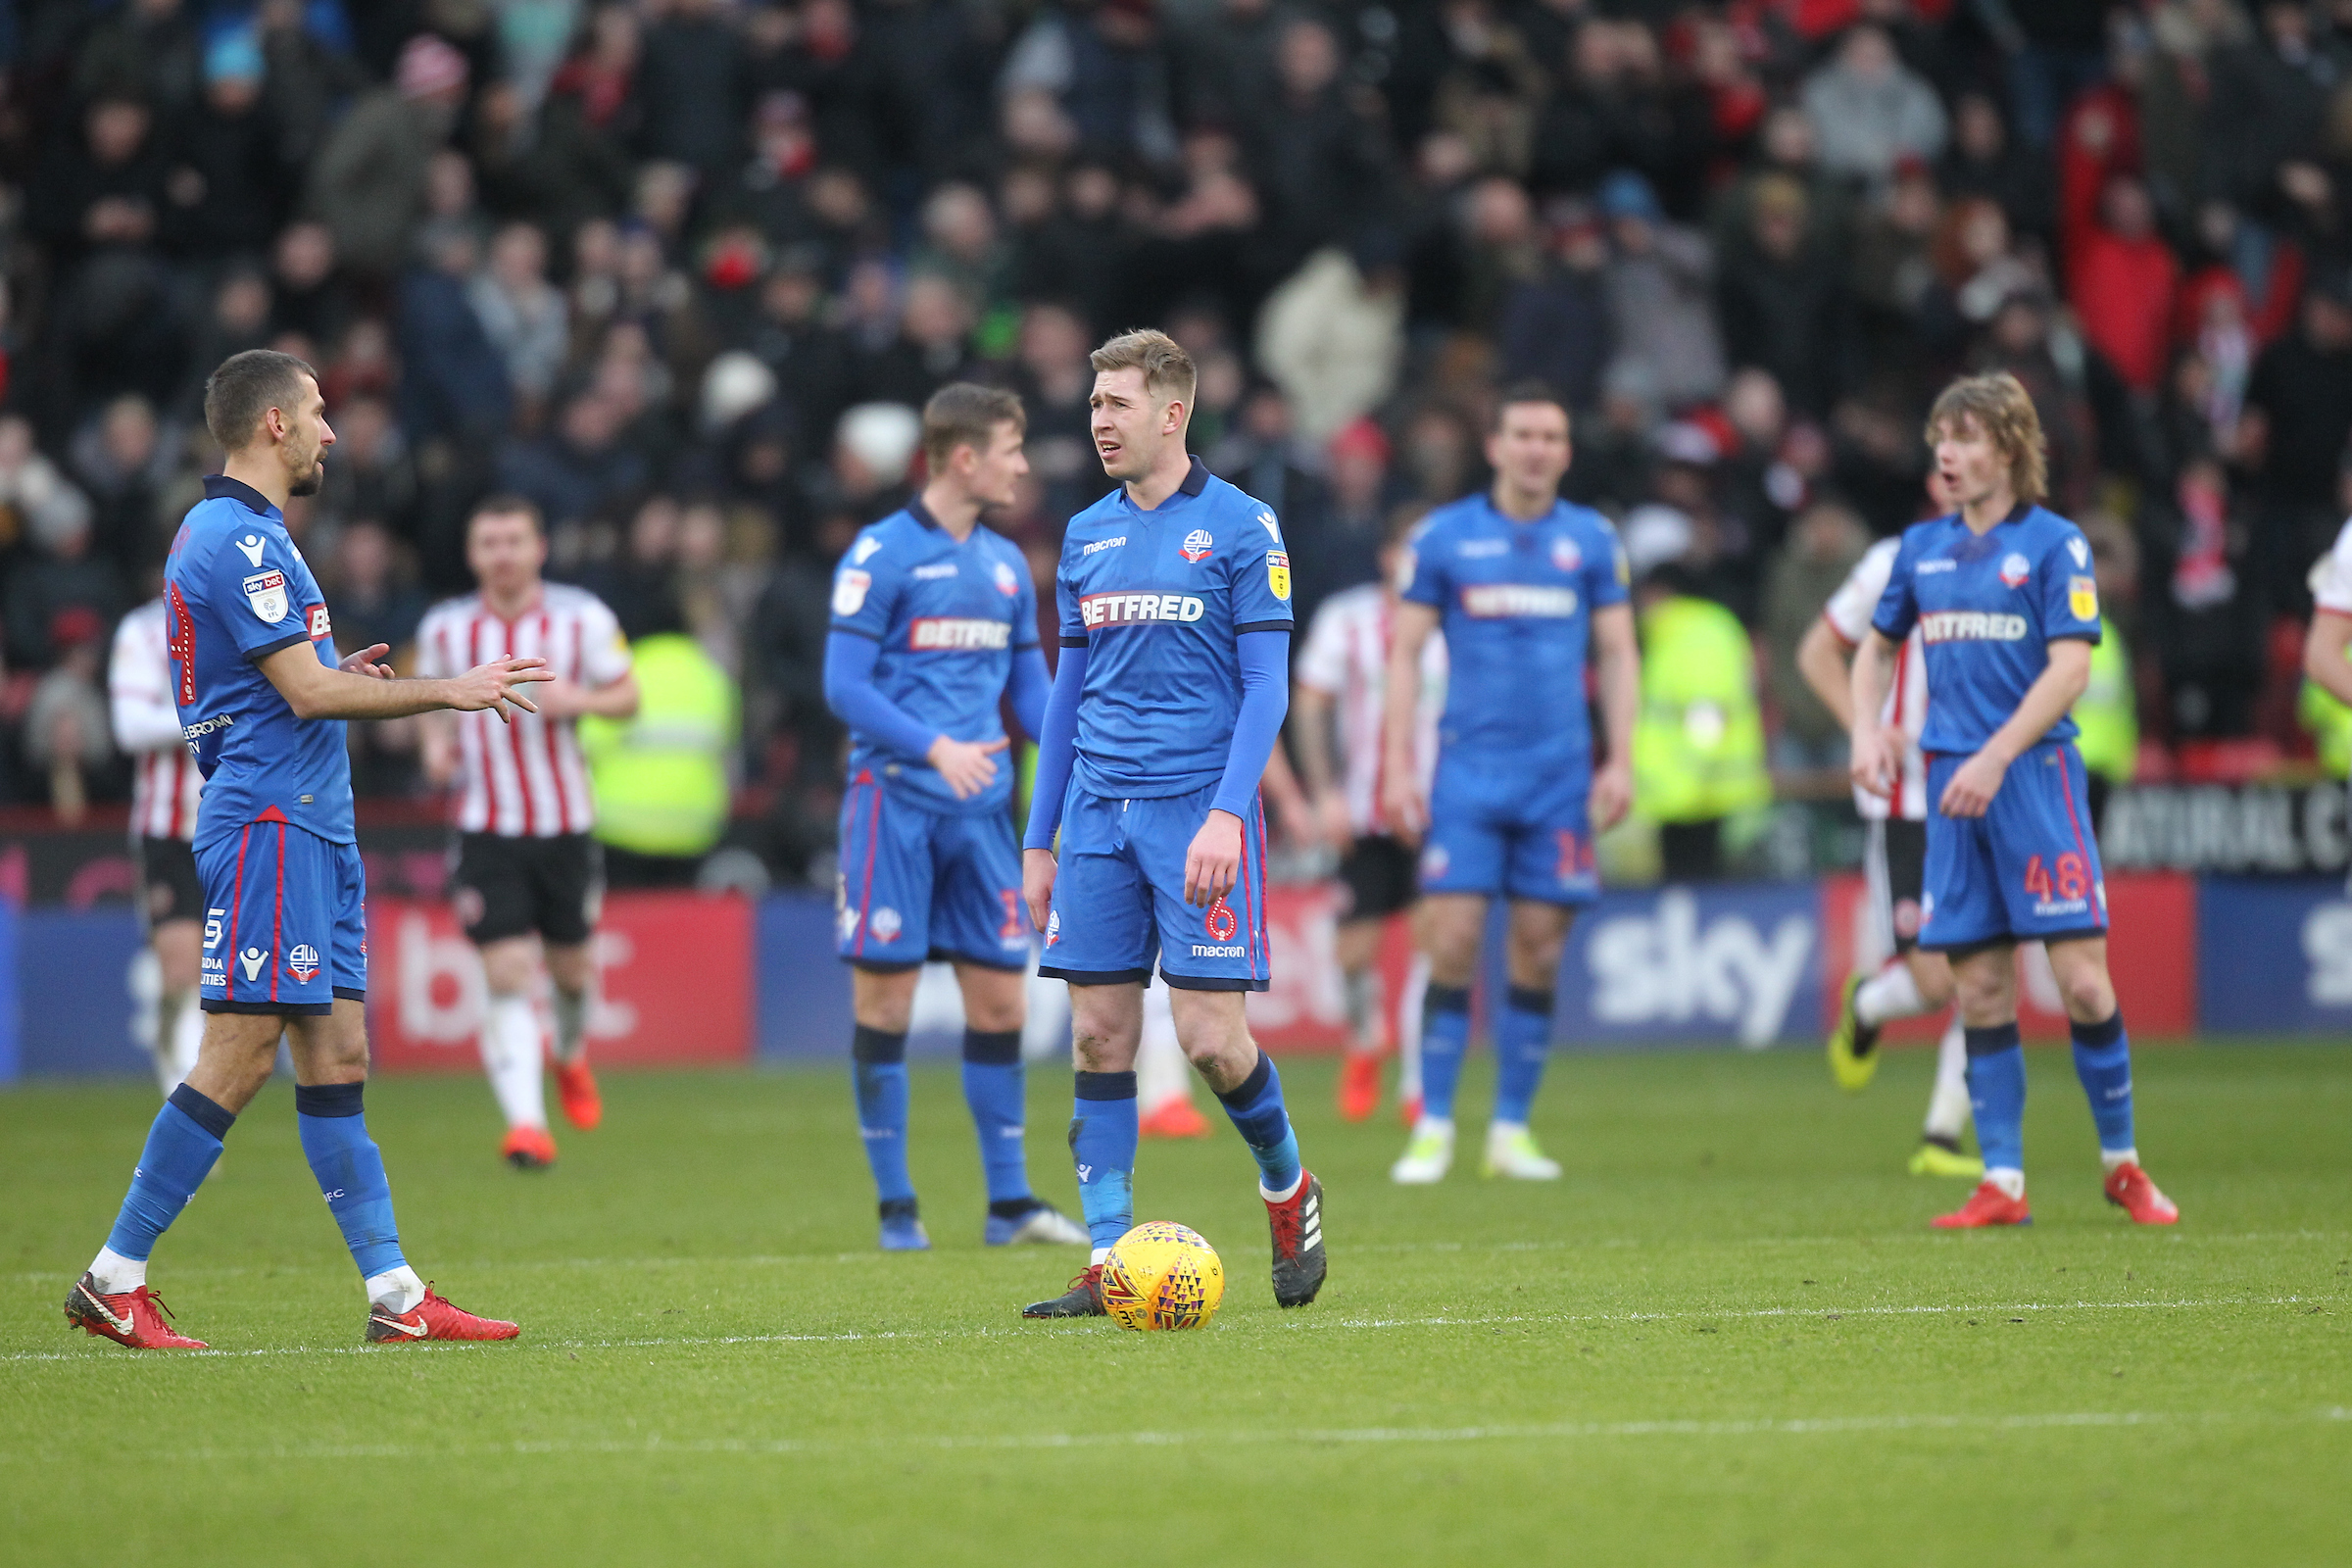 MATCH REACTION: Sheffield United 2 Bolton Wanderers 0